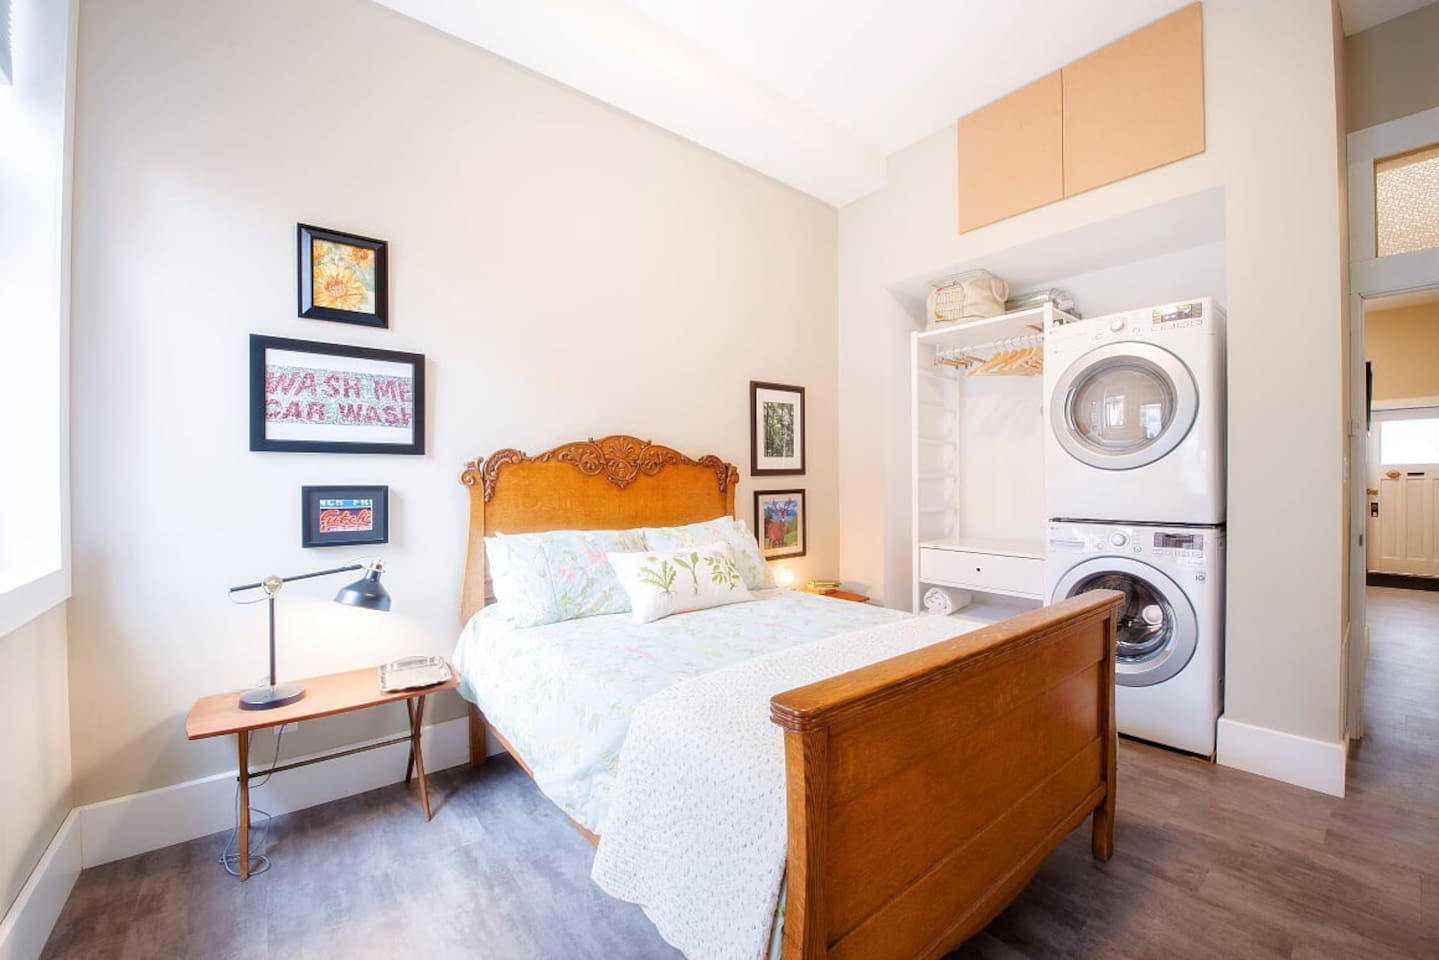 Brand new, Full size, private, washer & dryer inside the unit - space to hang clothes. New mattress, blackout blinds, bedside lamps, device charger - we've tried to think of everything to make your stay as comfortable as possible.